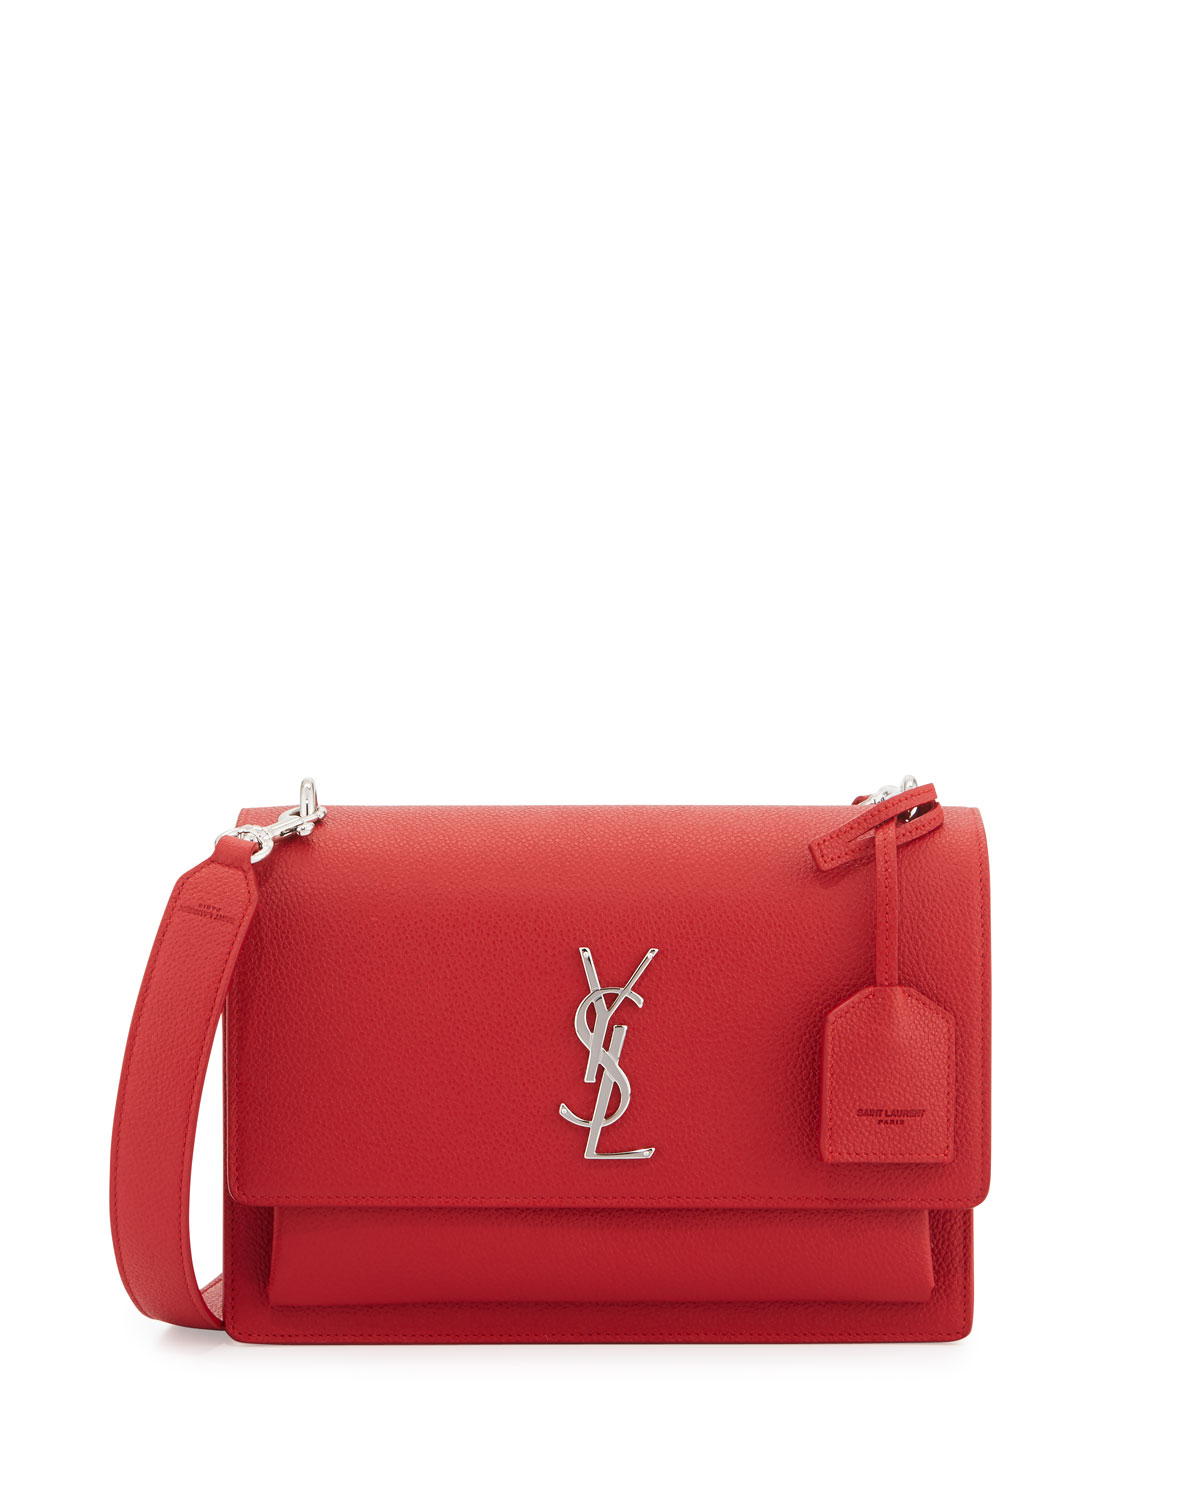 9a0005a4 Sunset Medium Crossbody Bag, Red